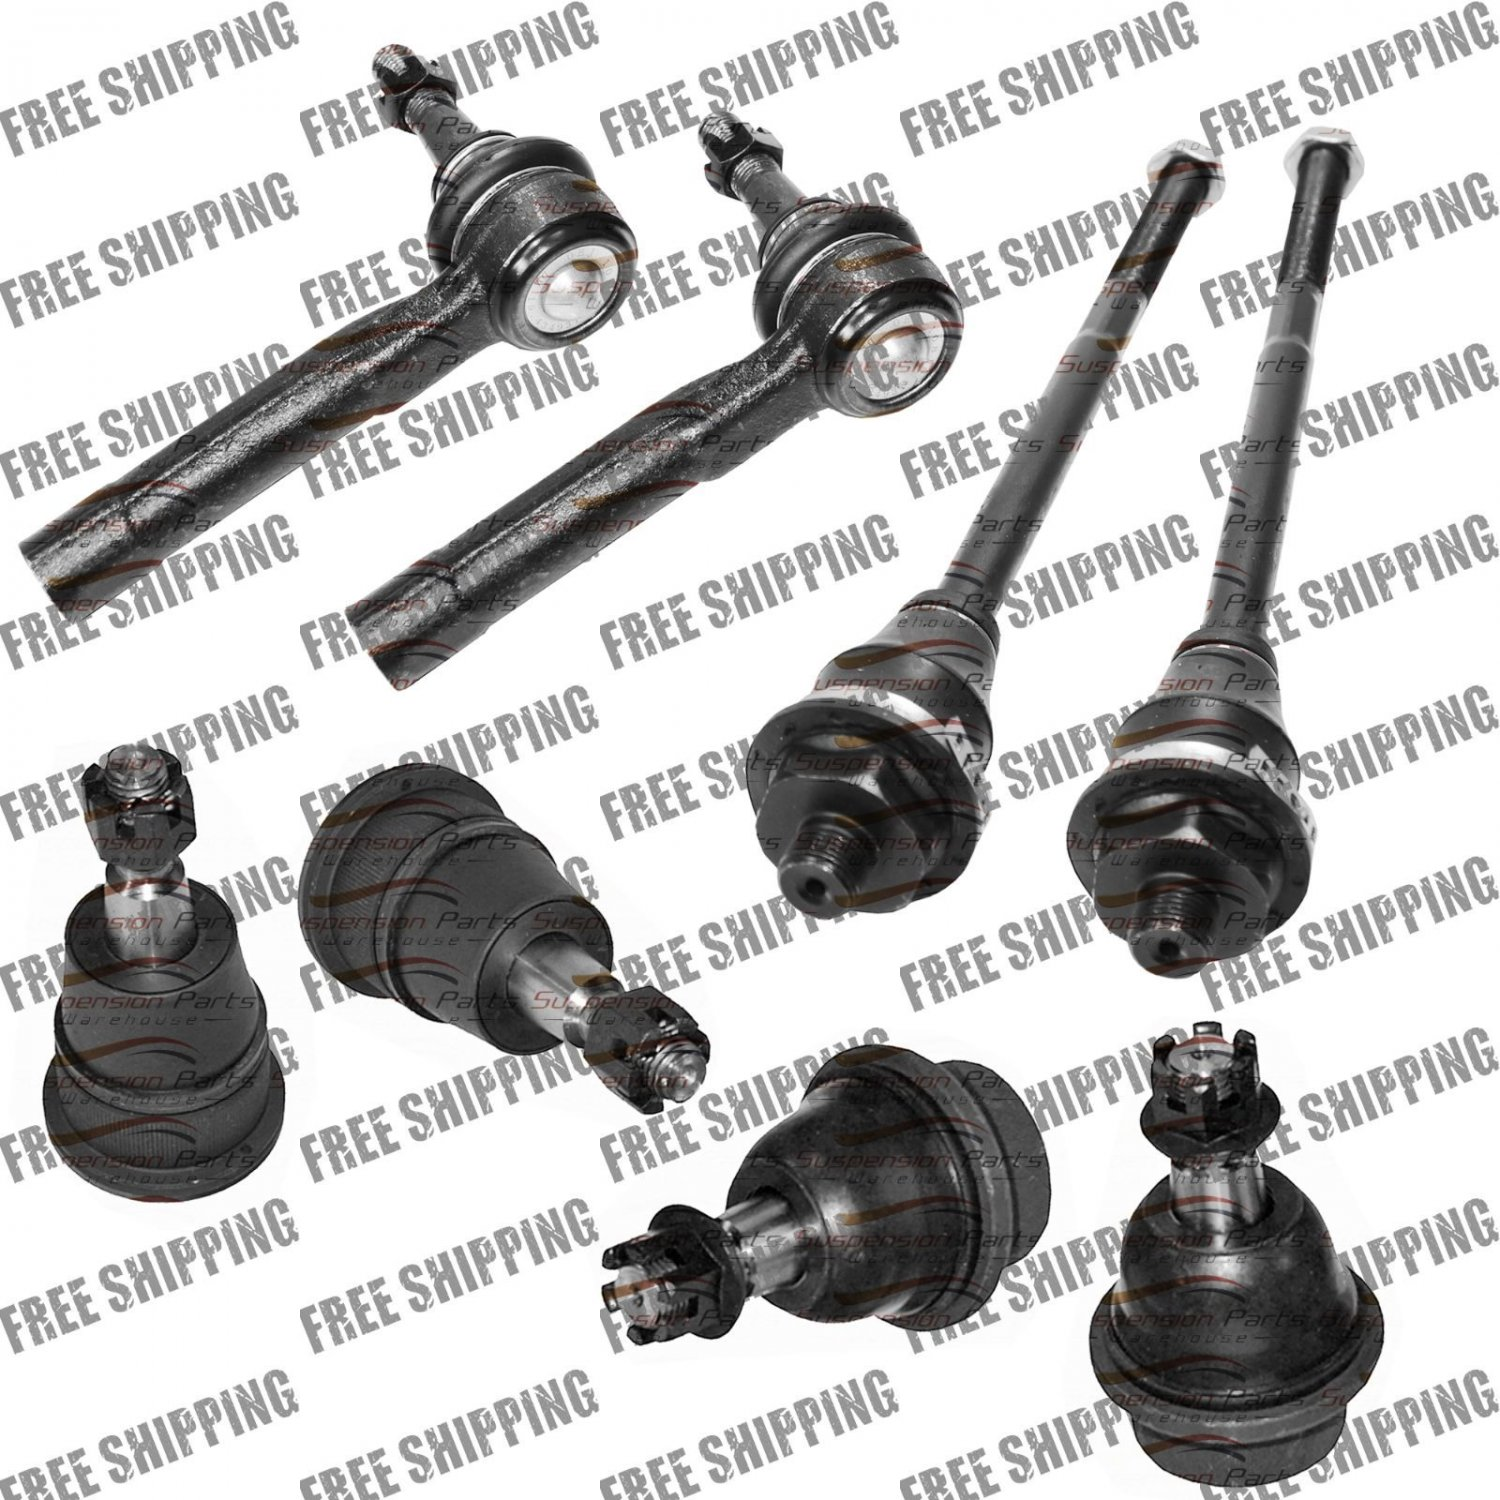 Front Tie Rod End-Ball Joint For Chevy Silverado 1500HD,2500HD and 3500 Classic